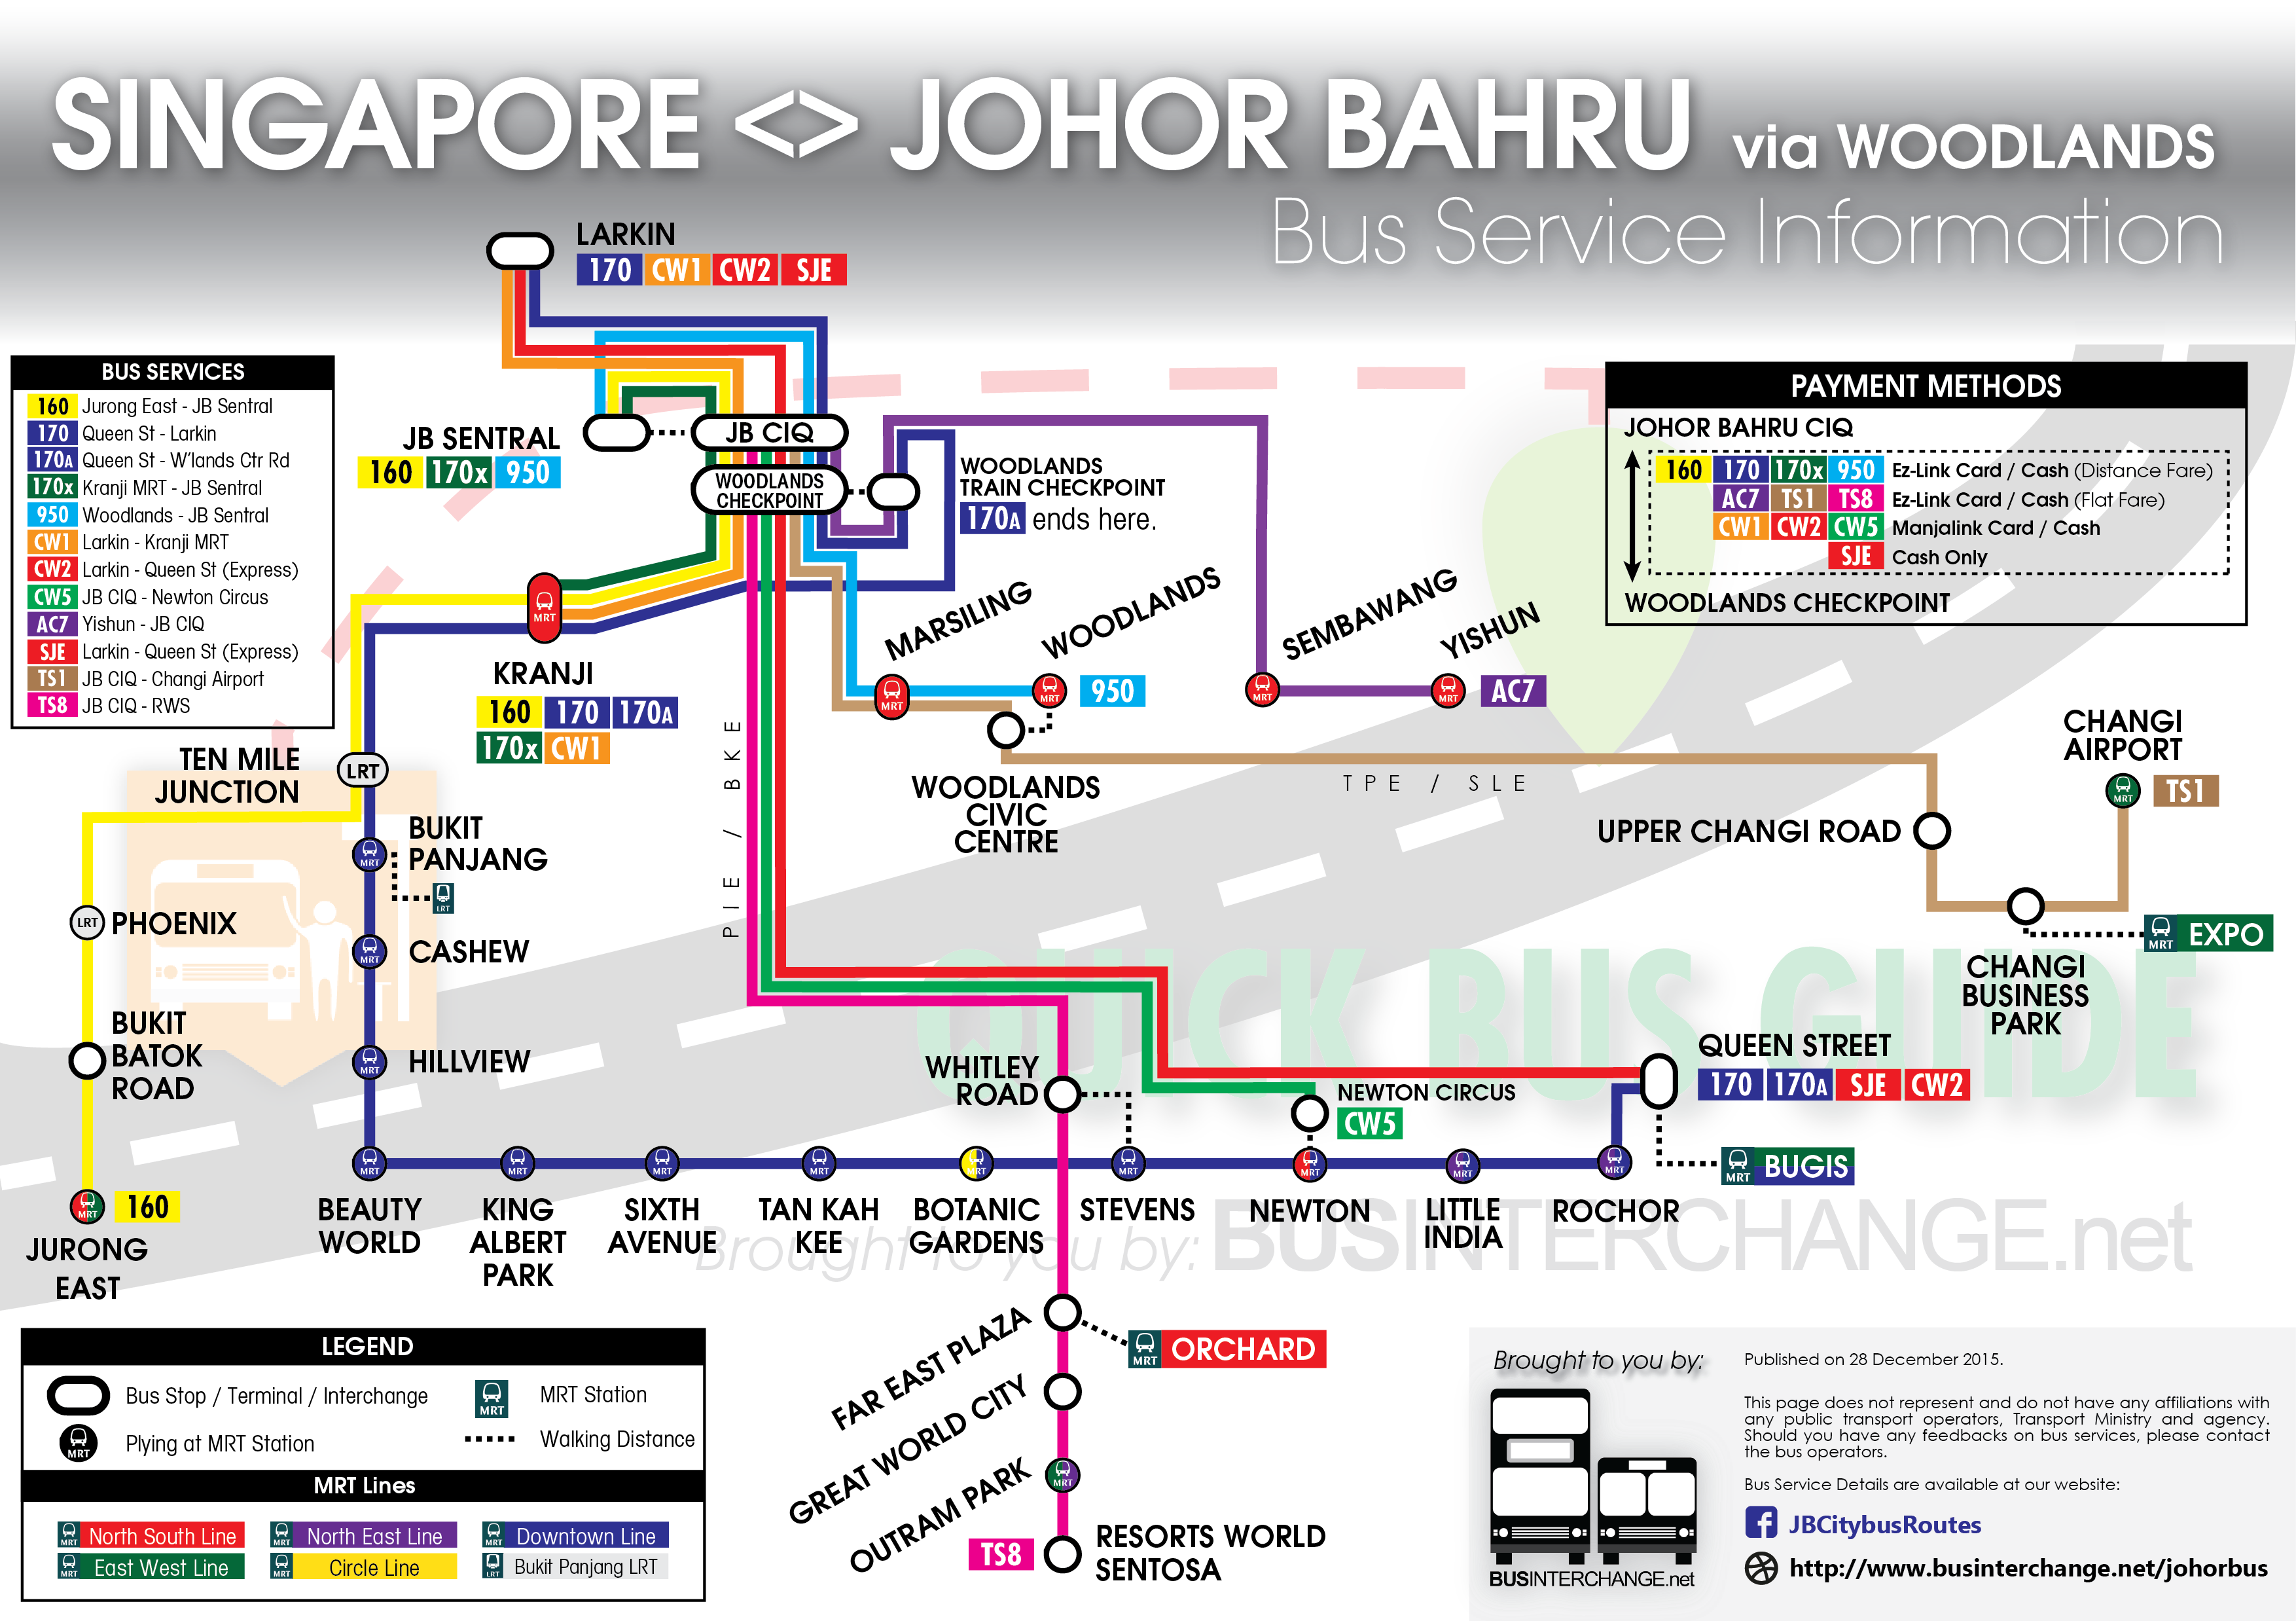 Easy Guide for Singapore - Johor Bahru Buses via Woodlands